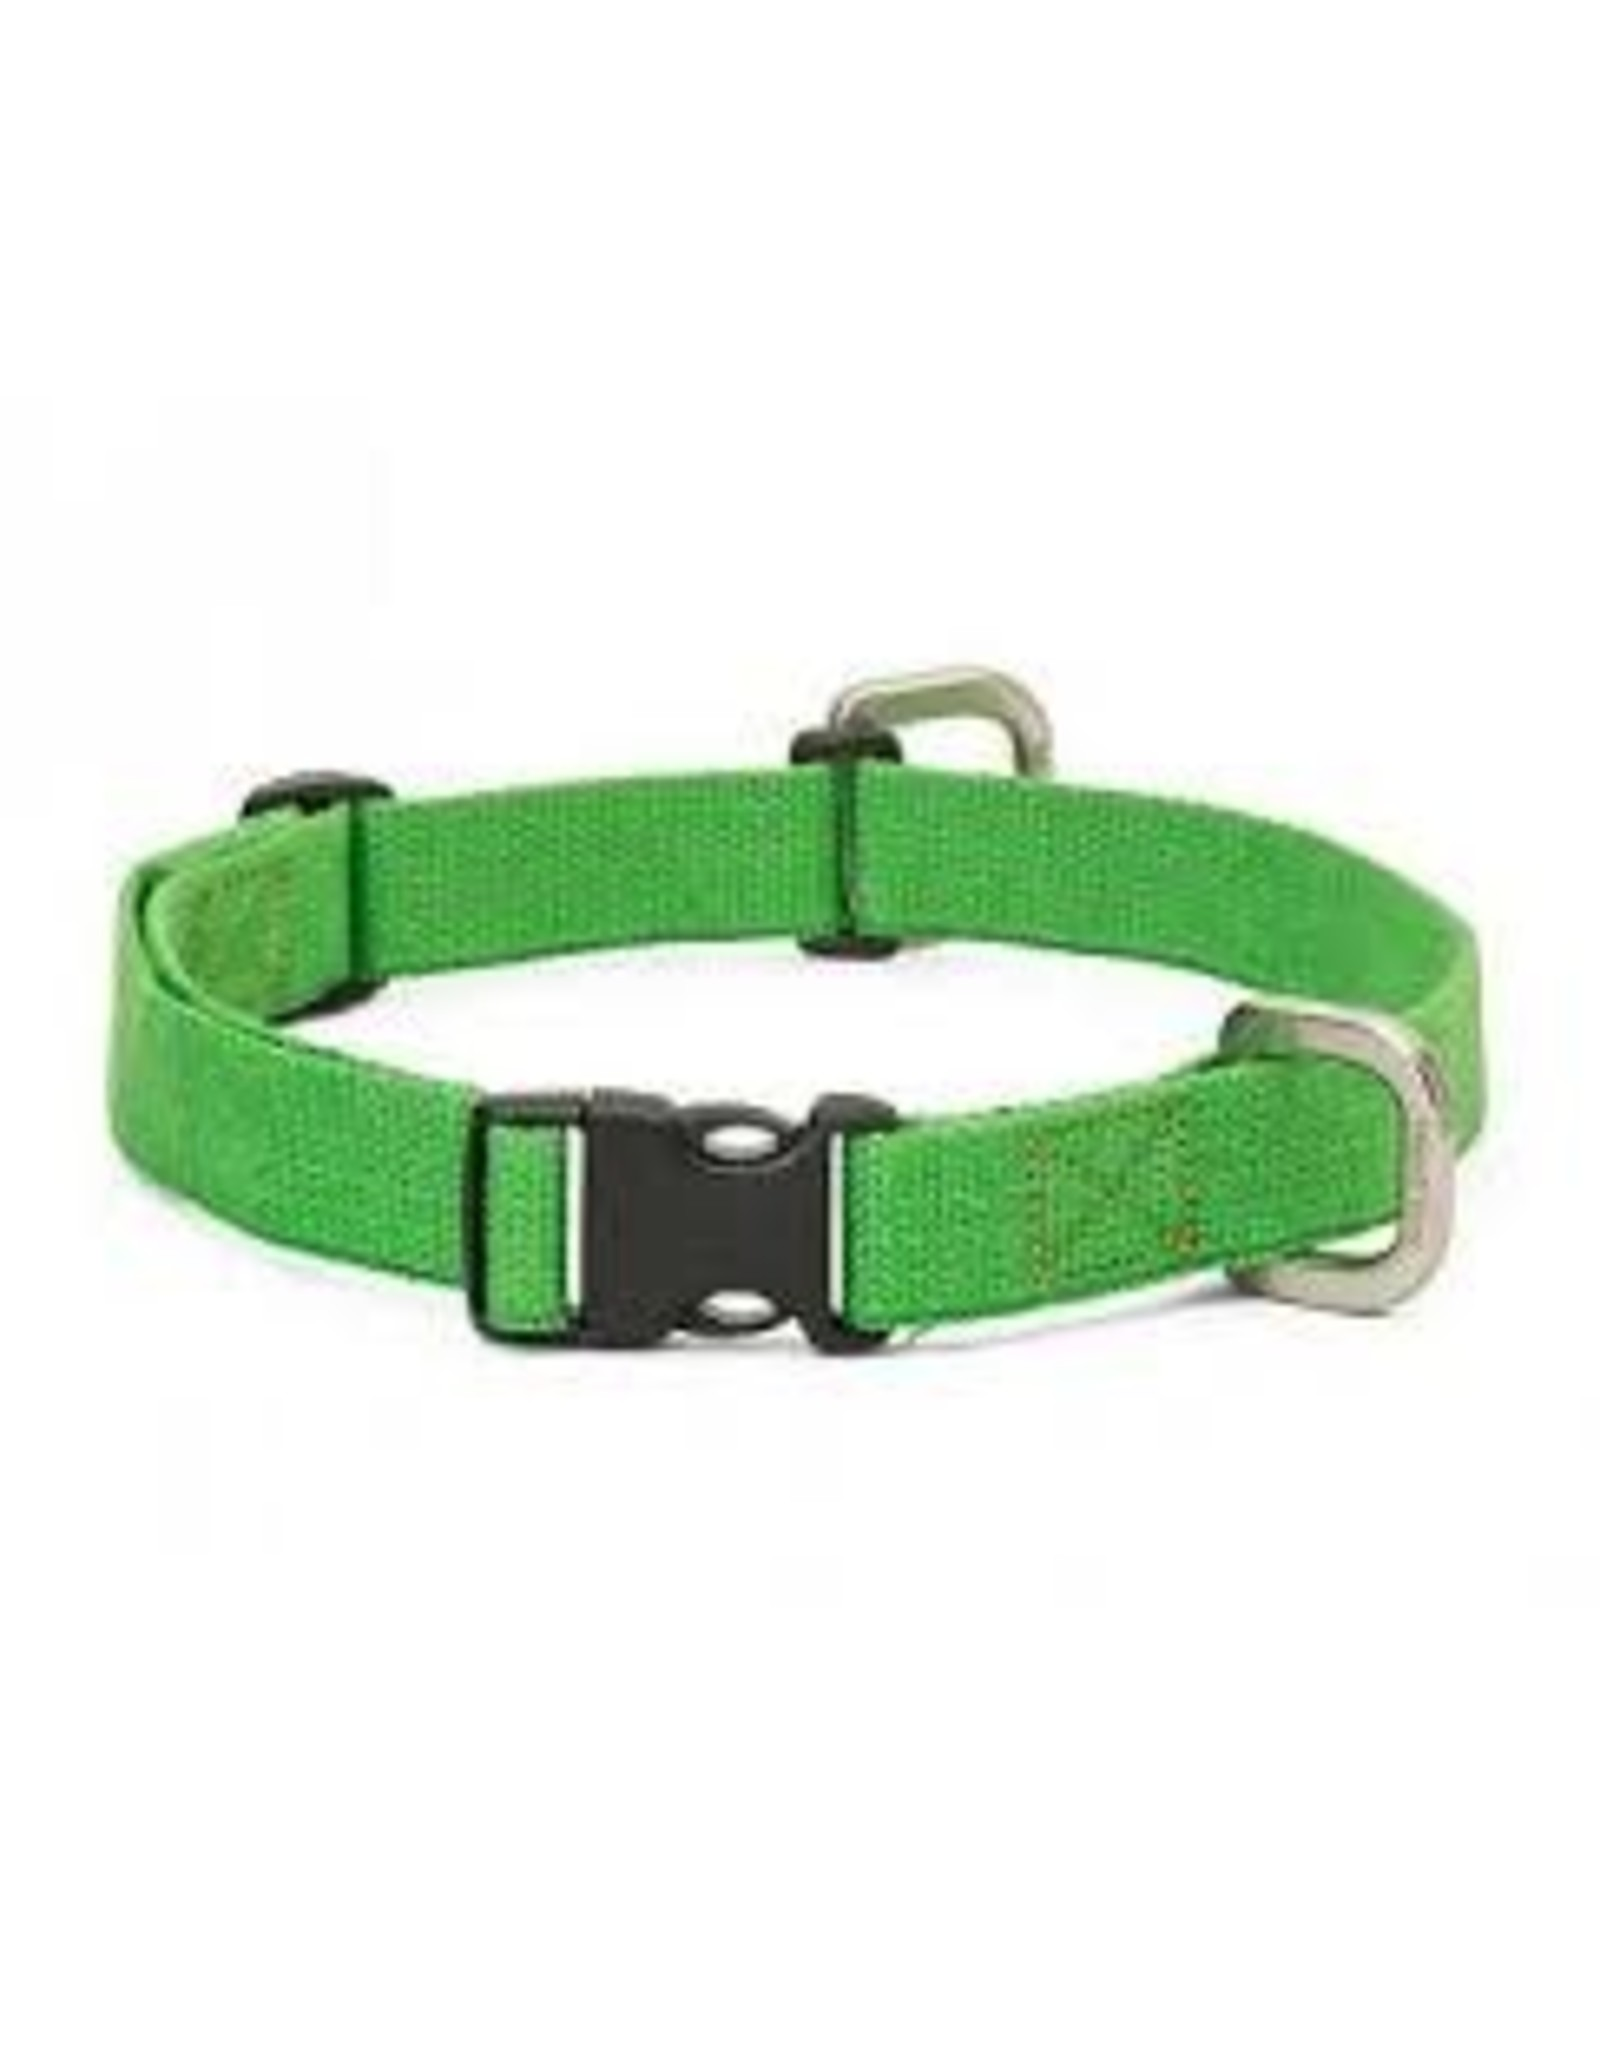 WEST PAW WEST PAW STROLLS COLLAR LG-GREEN